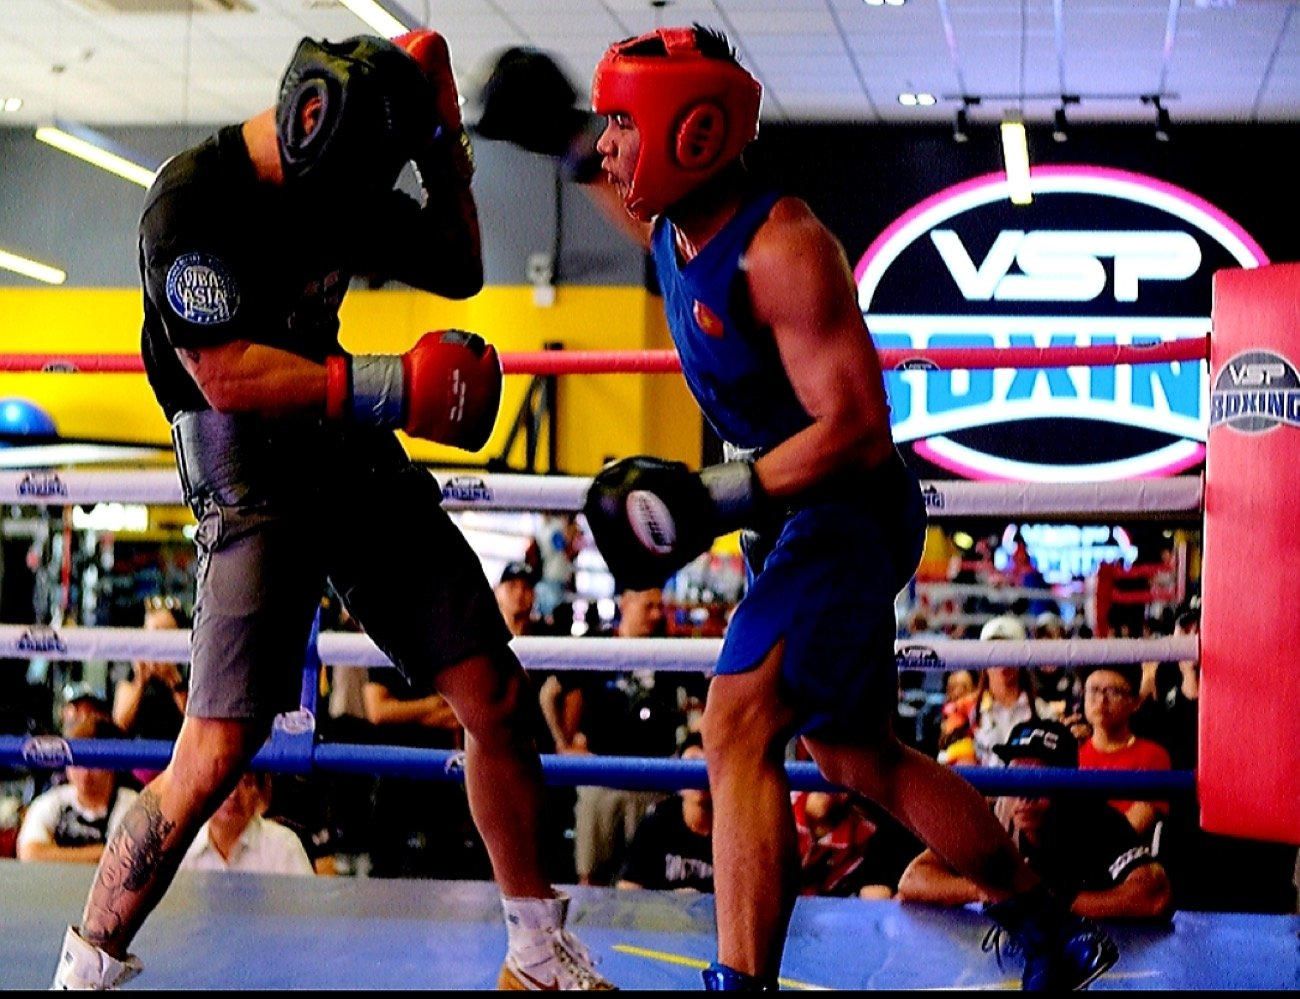 Javier Fortuna - VSP Boxing gym will be conducting a public workout for many of the Victory 8 fighters and also local talents in Ho Chi Minh City on Saturday June 13. The event will be a great opportunity to see top level sparring from boxers who are currently restricted from International travel and need an opportunity for higher echelon ring time.